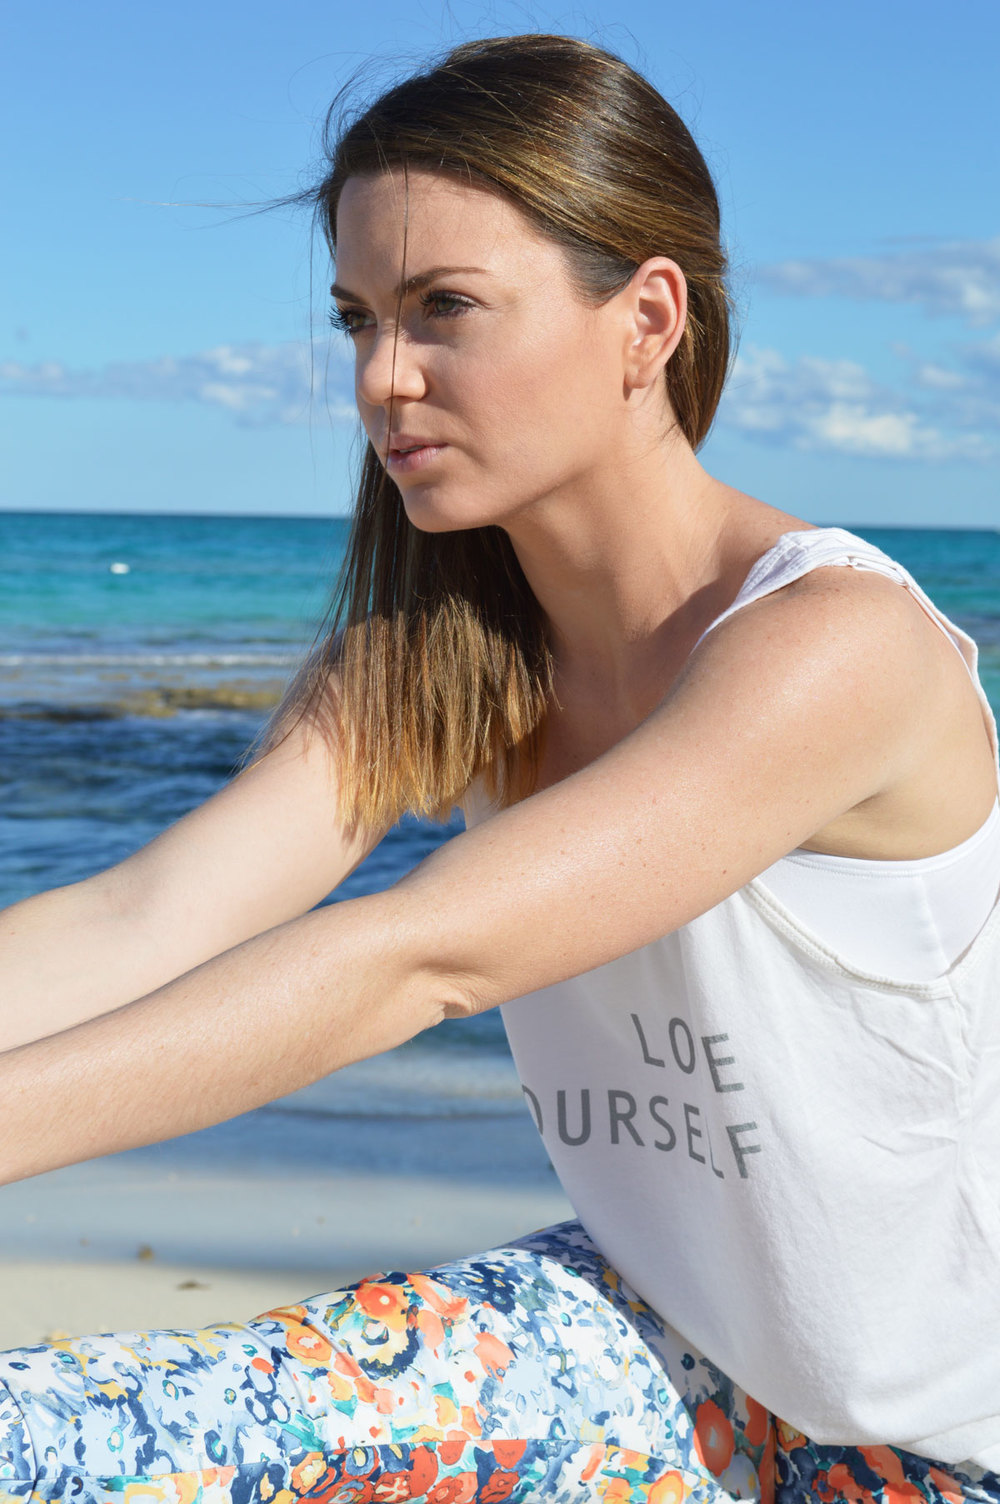 Yoga-outlet-jala-clothing-best-yoga-pants-good-hyouman-love-tank-soft-lifestyle-blogger-nassau-bahamas.jpeg